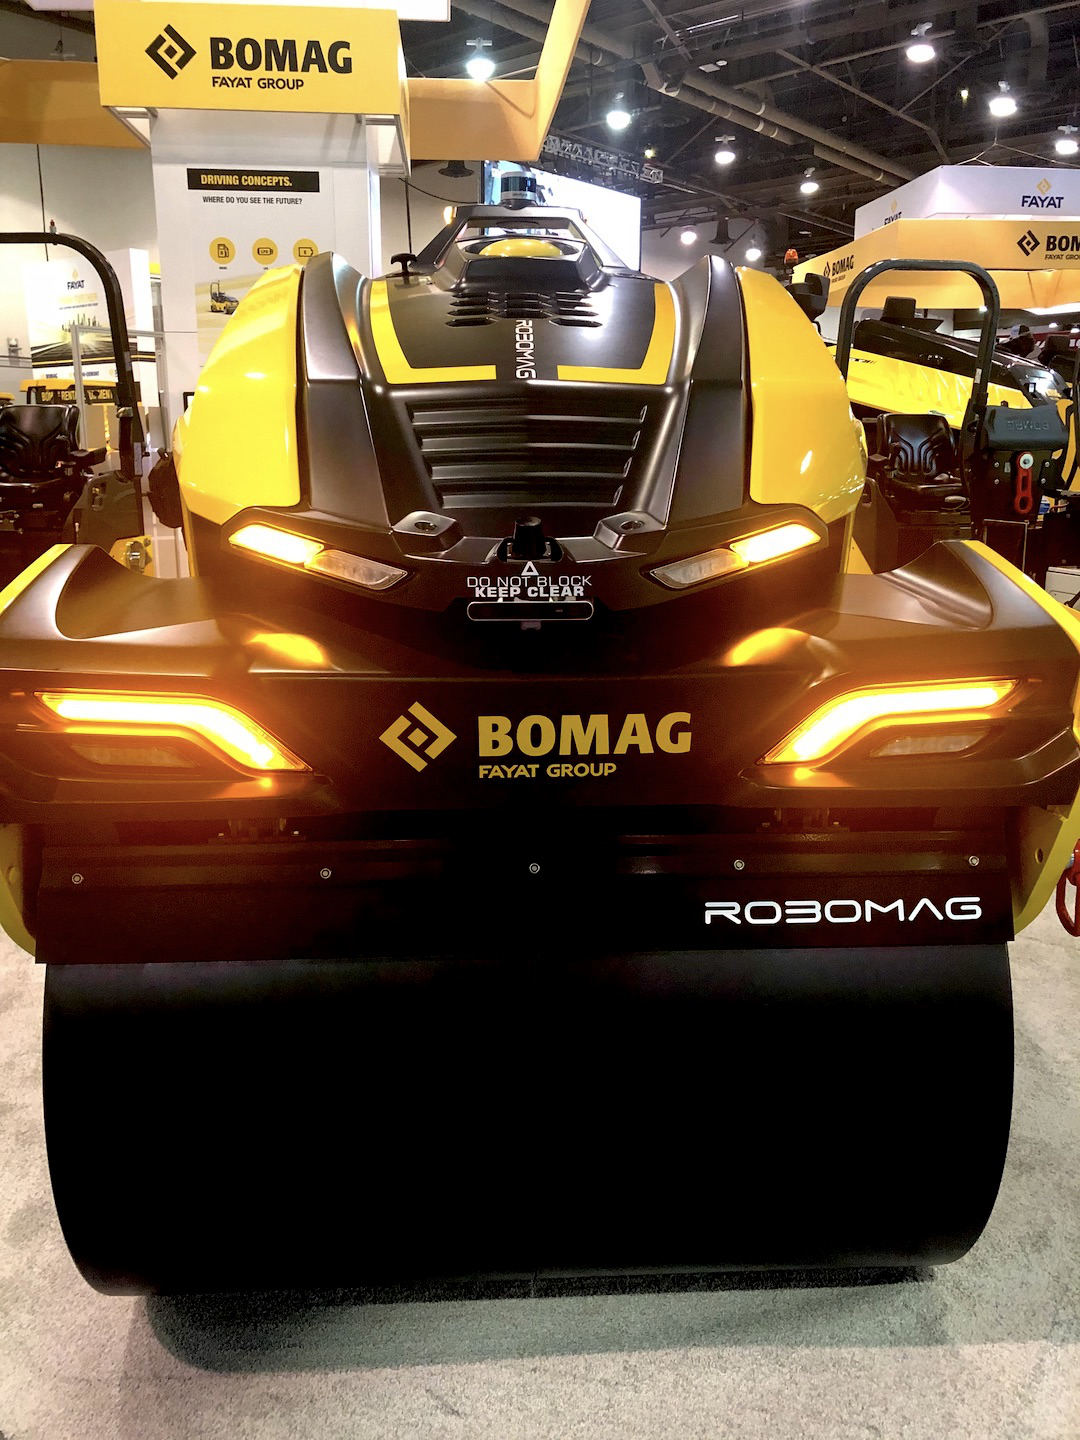 BOMAG's fully autonomous ROBOMAG roller on display